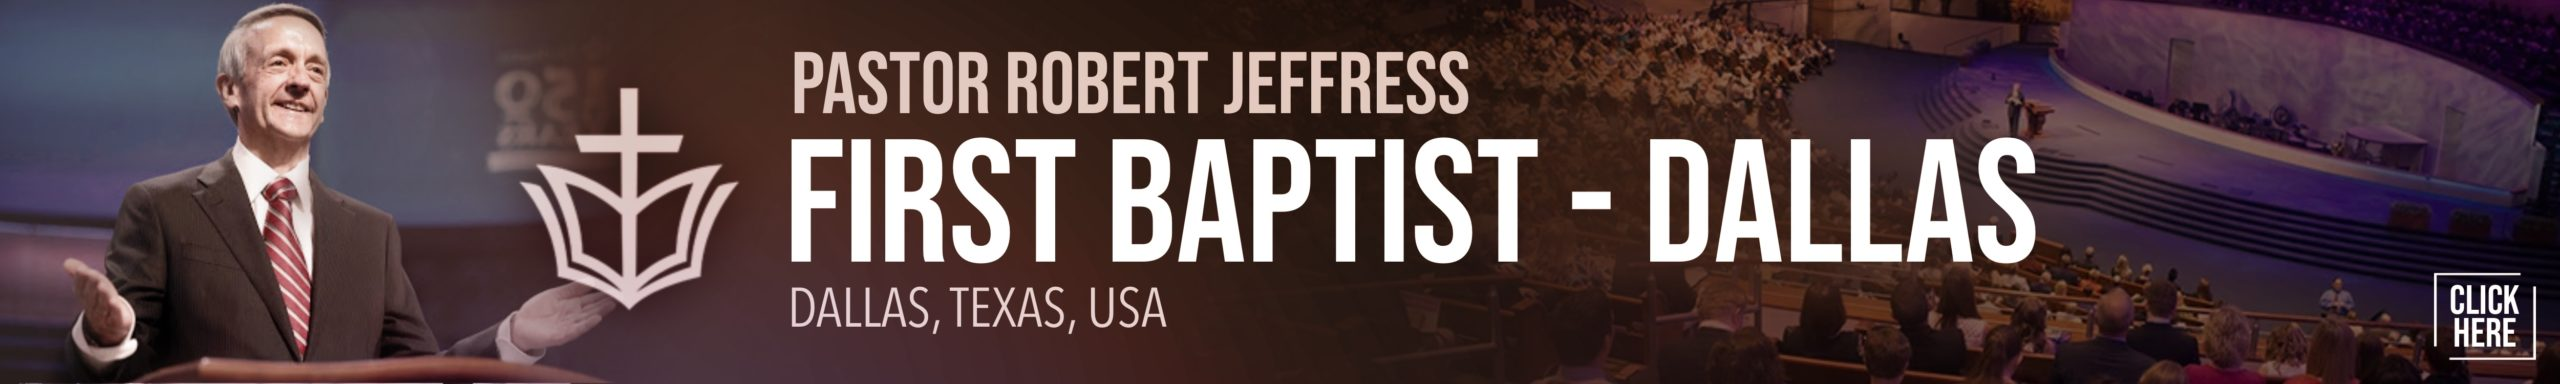 Pastor Robert Jeffress - First Baptist Dallas